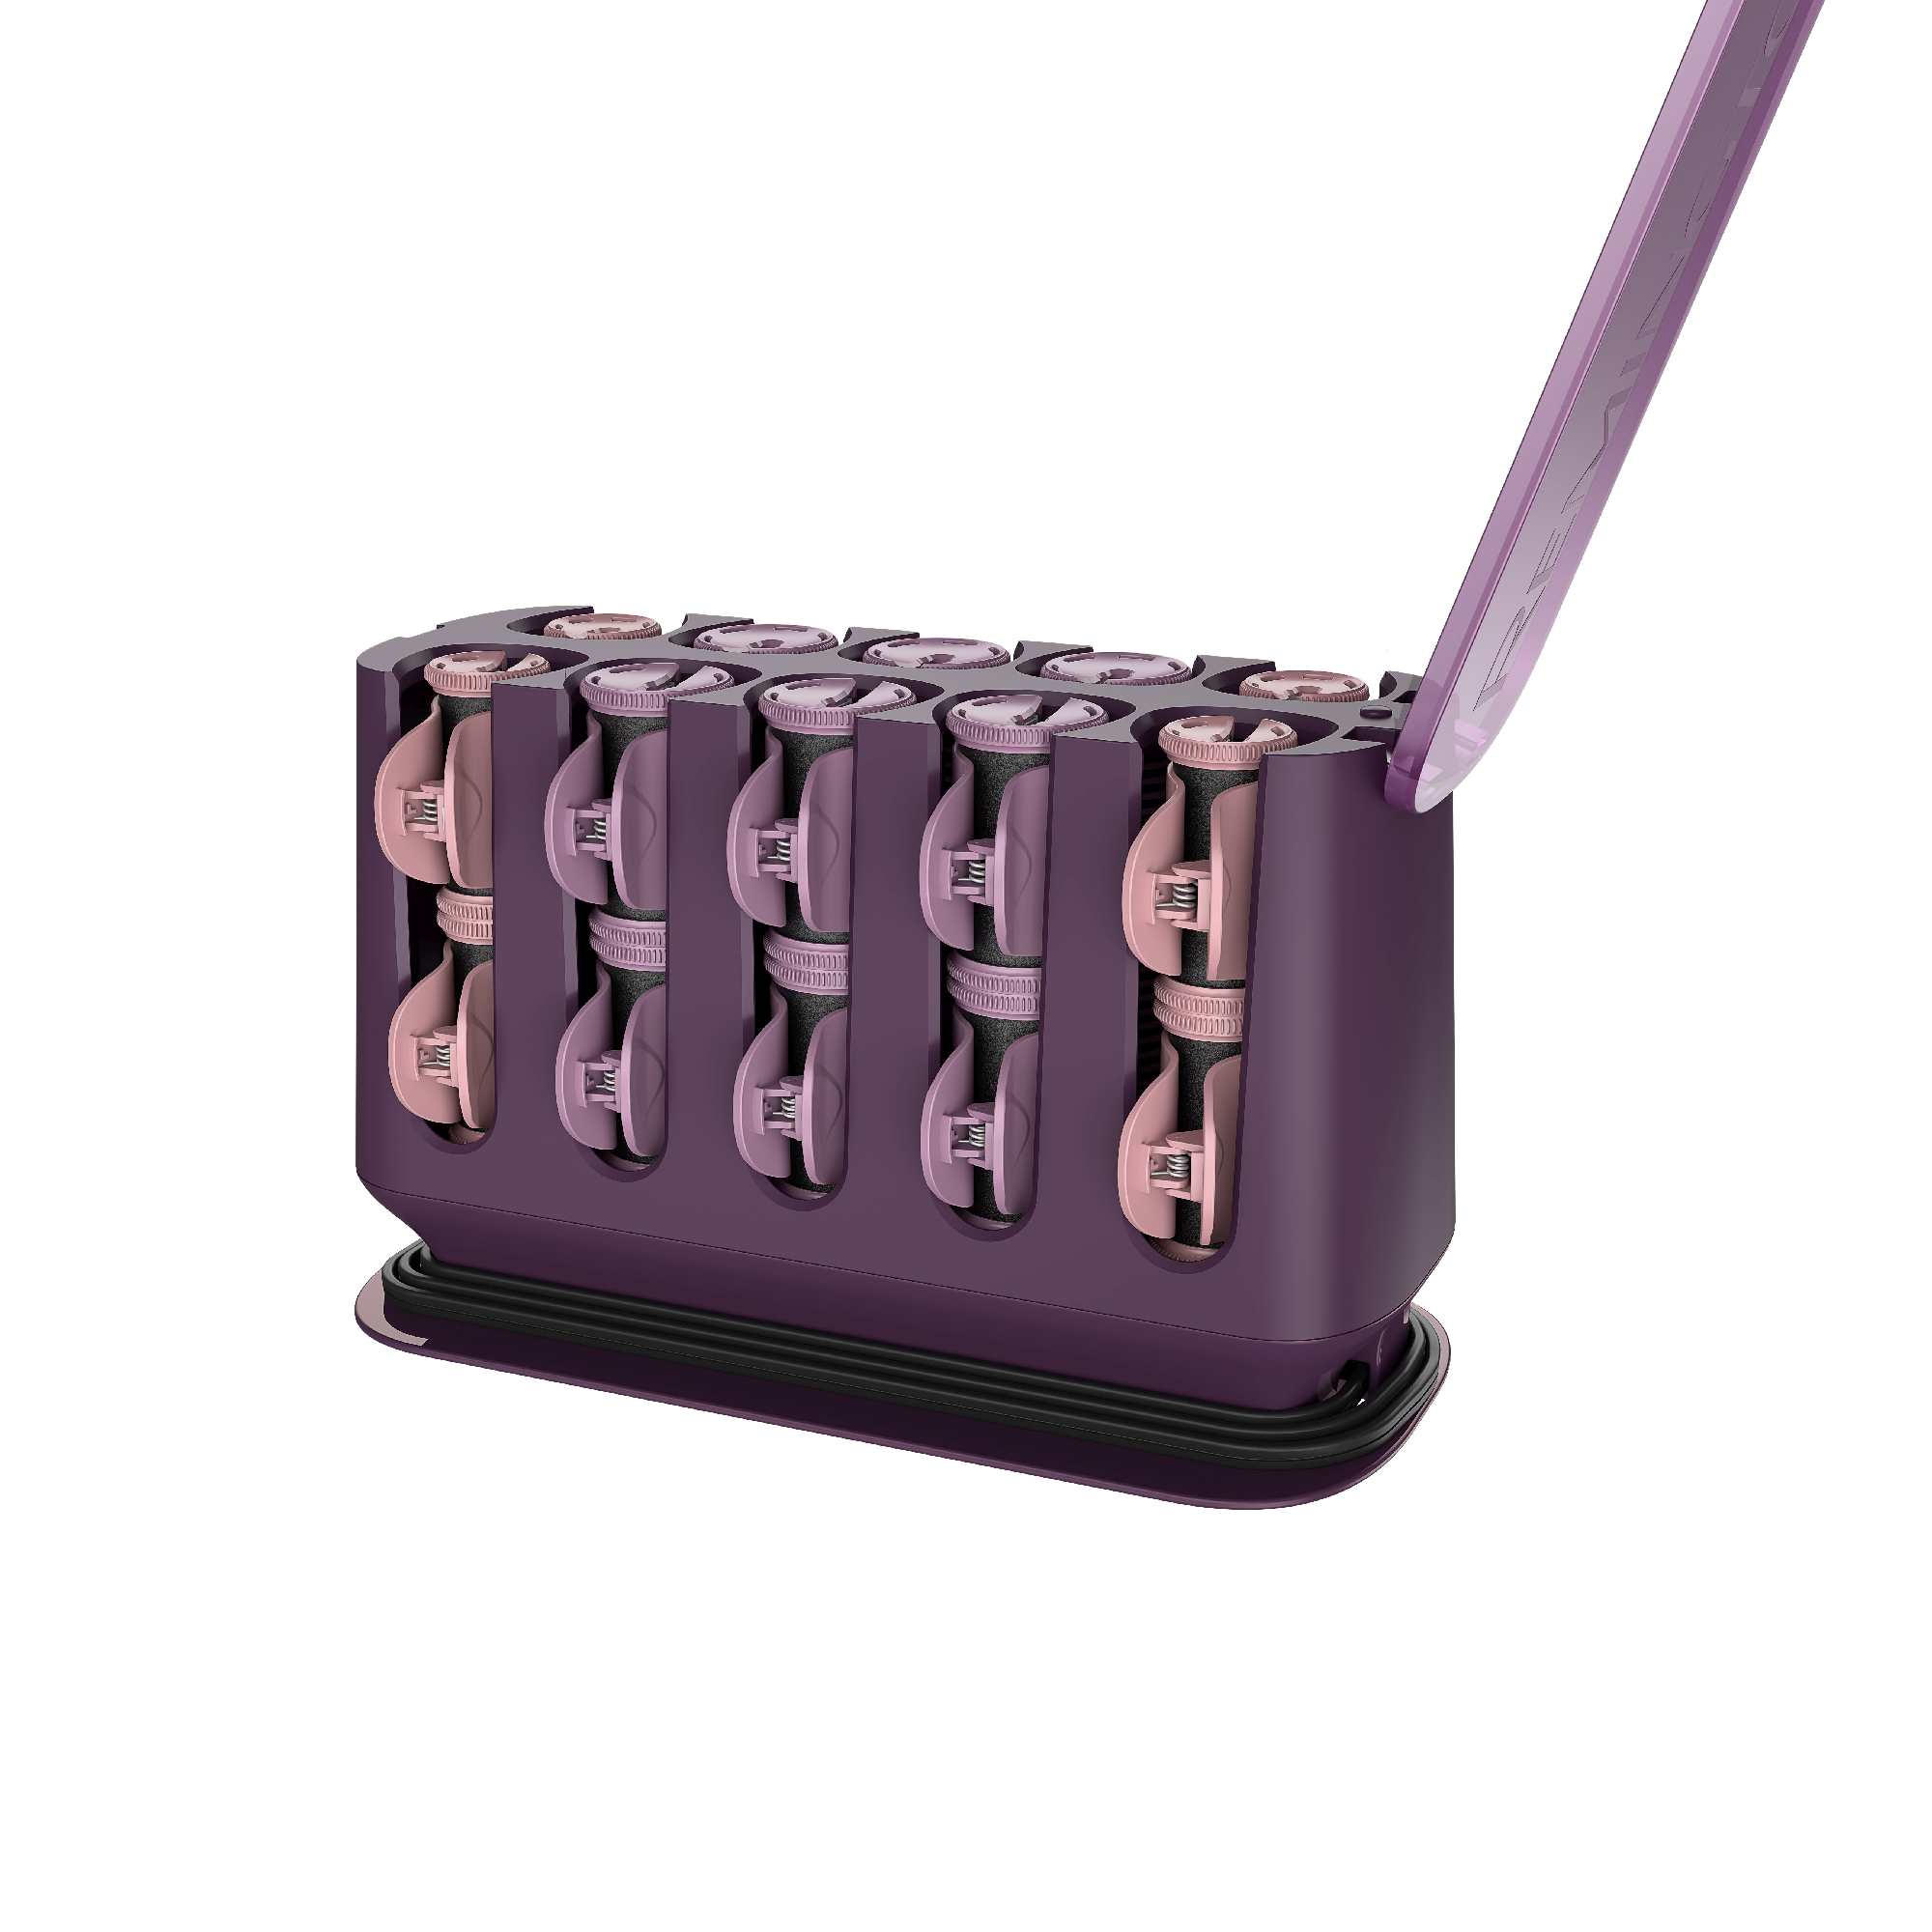 Remington Pro Thermaluxe Ceramic Hair Setter, Hair Rollers, Purple, H9100